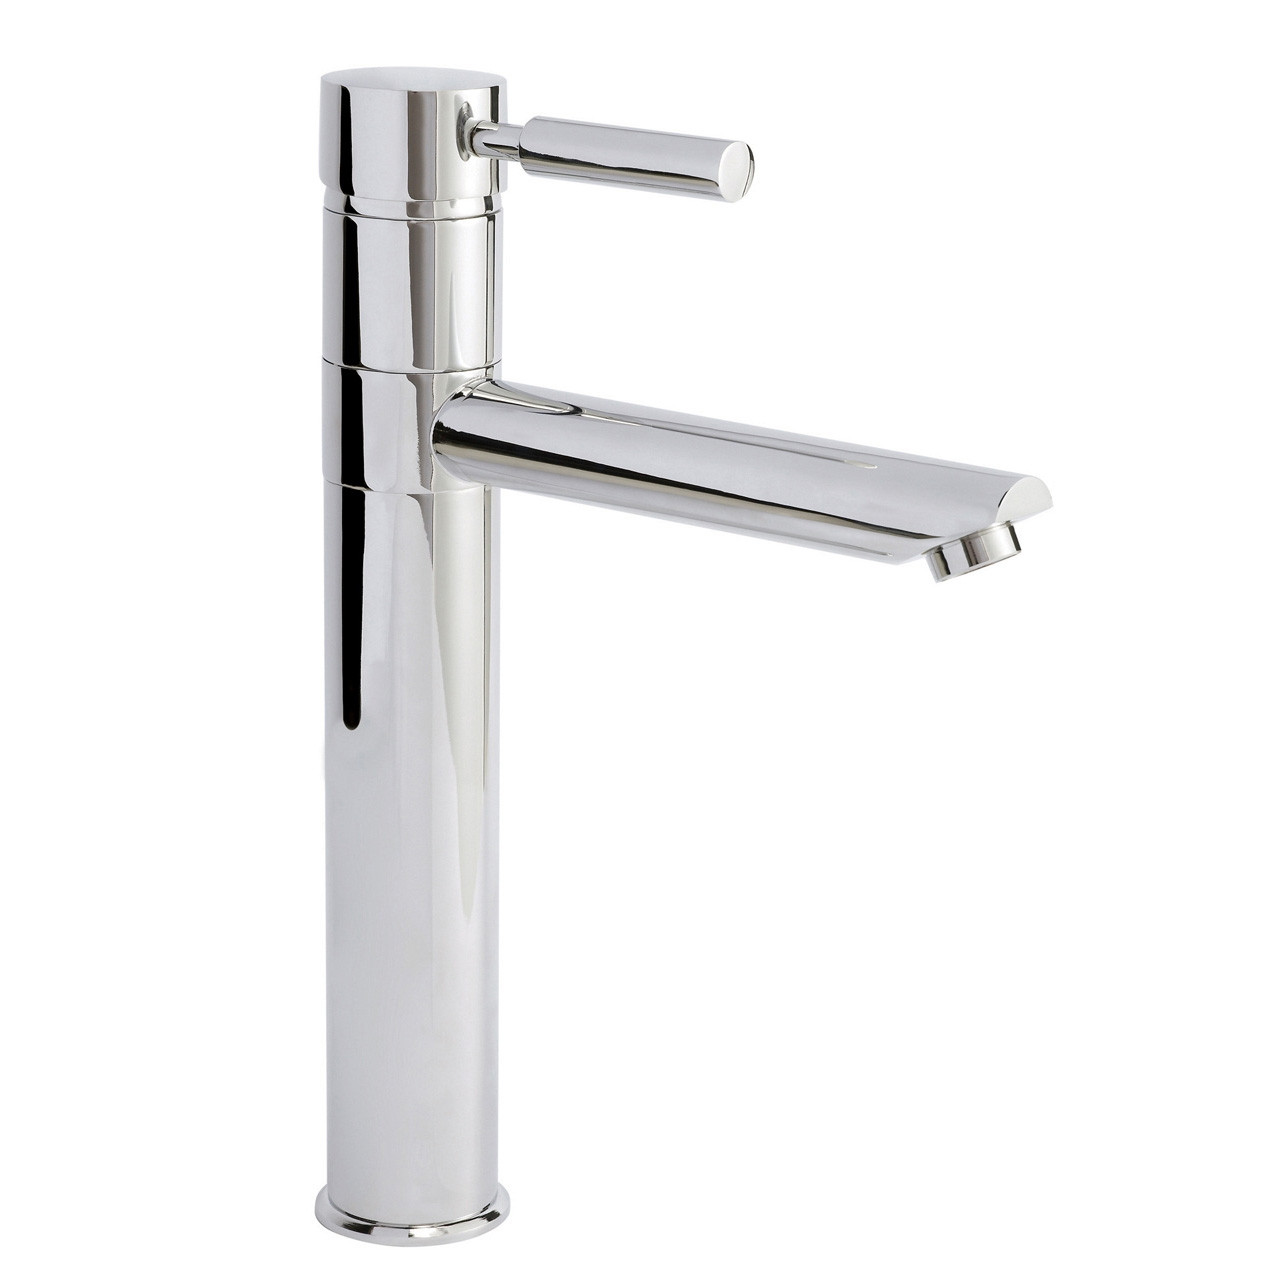 Nuie Series 2 Chrome High Rise Mixer Basin Tap with Swivel Spout - FJ319